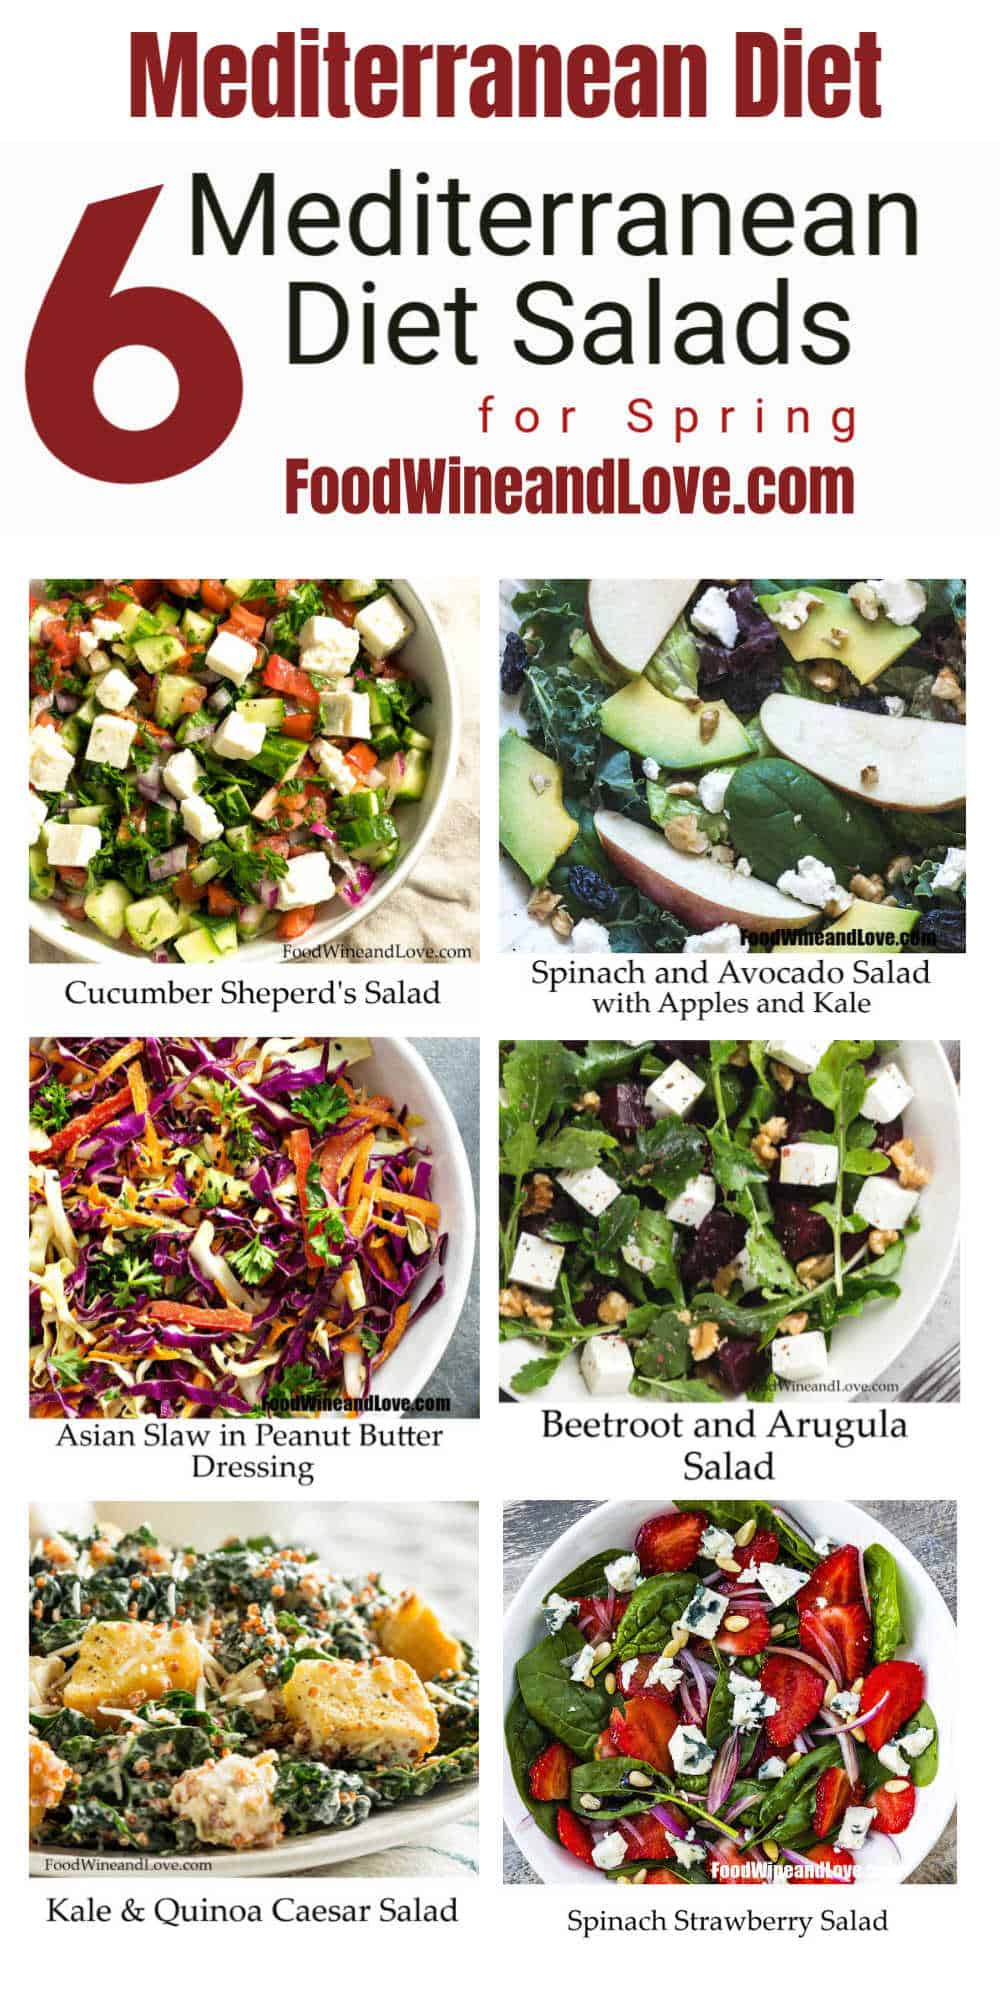 6 Mediterranean Diet Salads for Spring